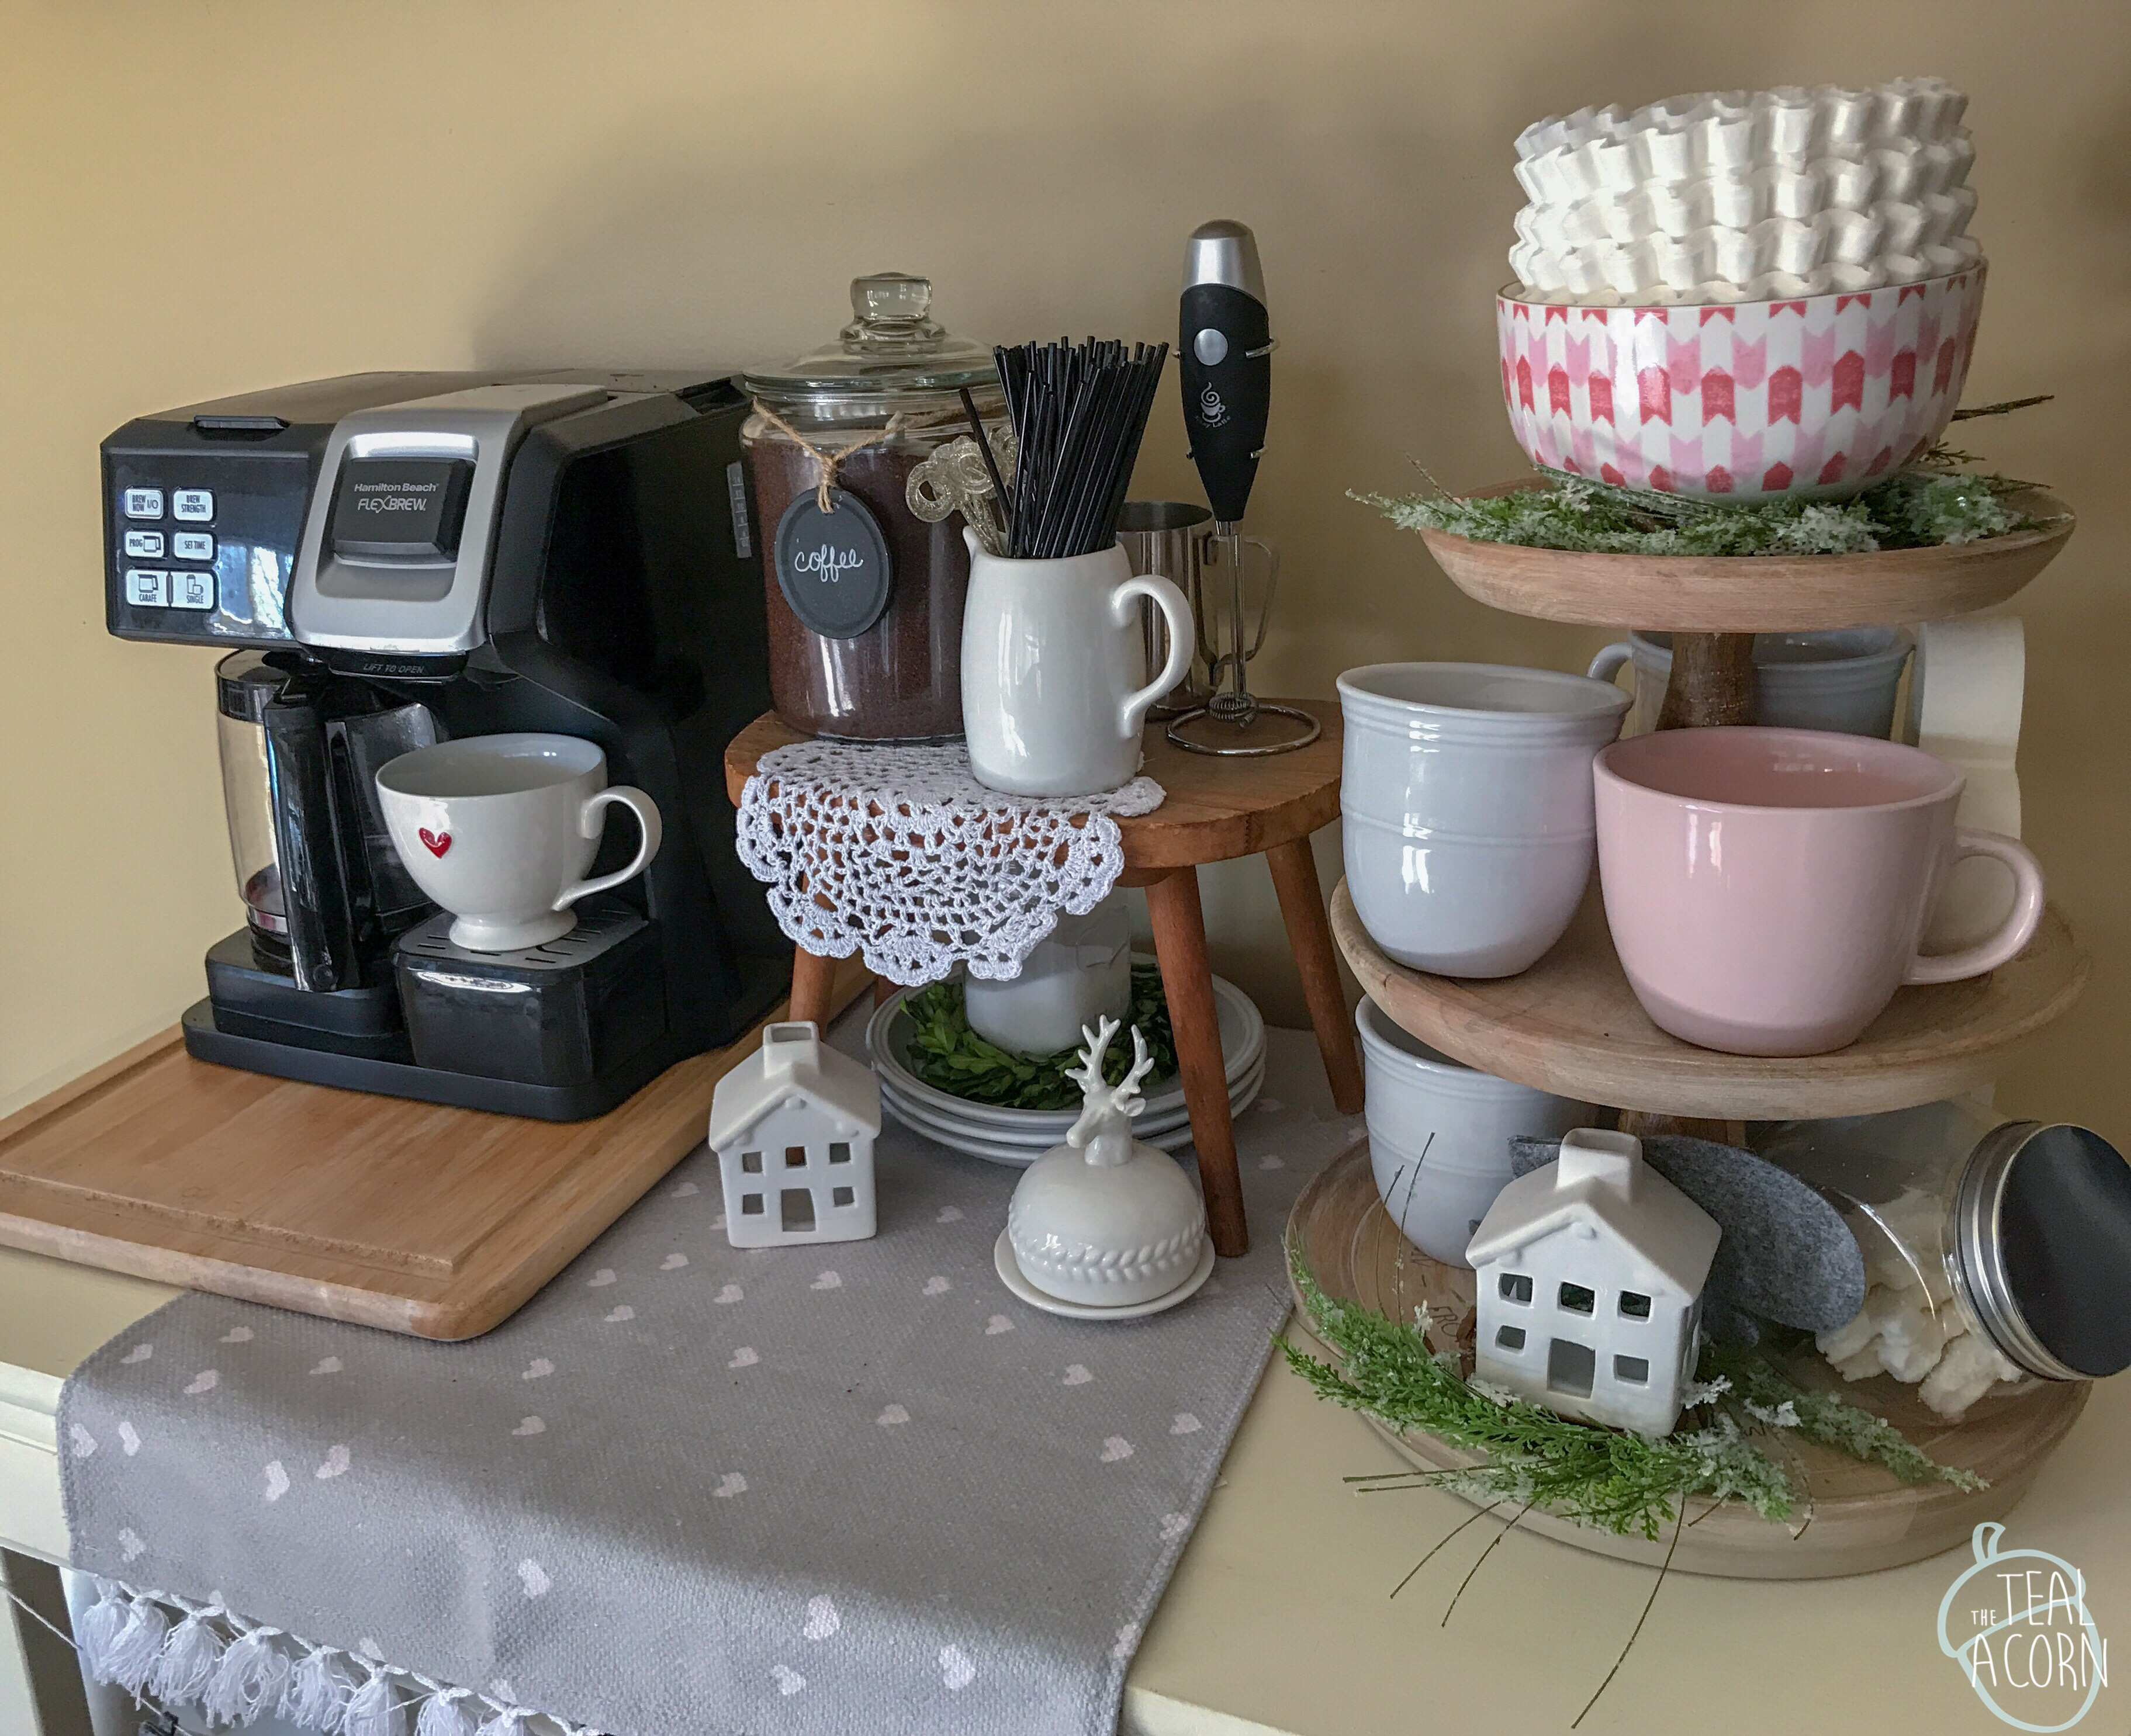 coffee bar decorated for valentines day with tiered tray decorated for valentines day with blush pink mugs, heart decor, and target dollar spot items.